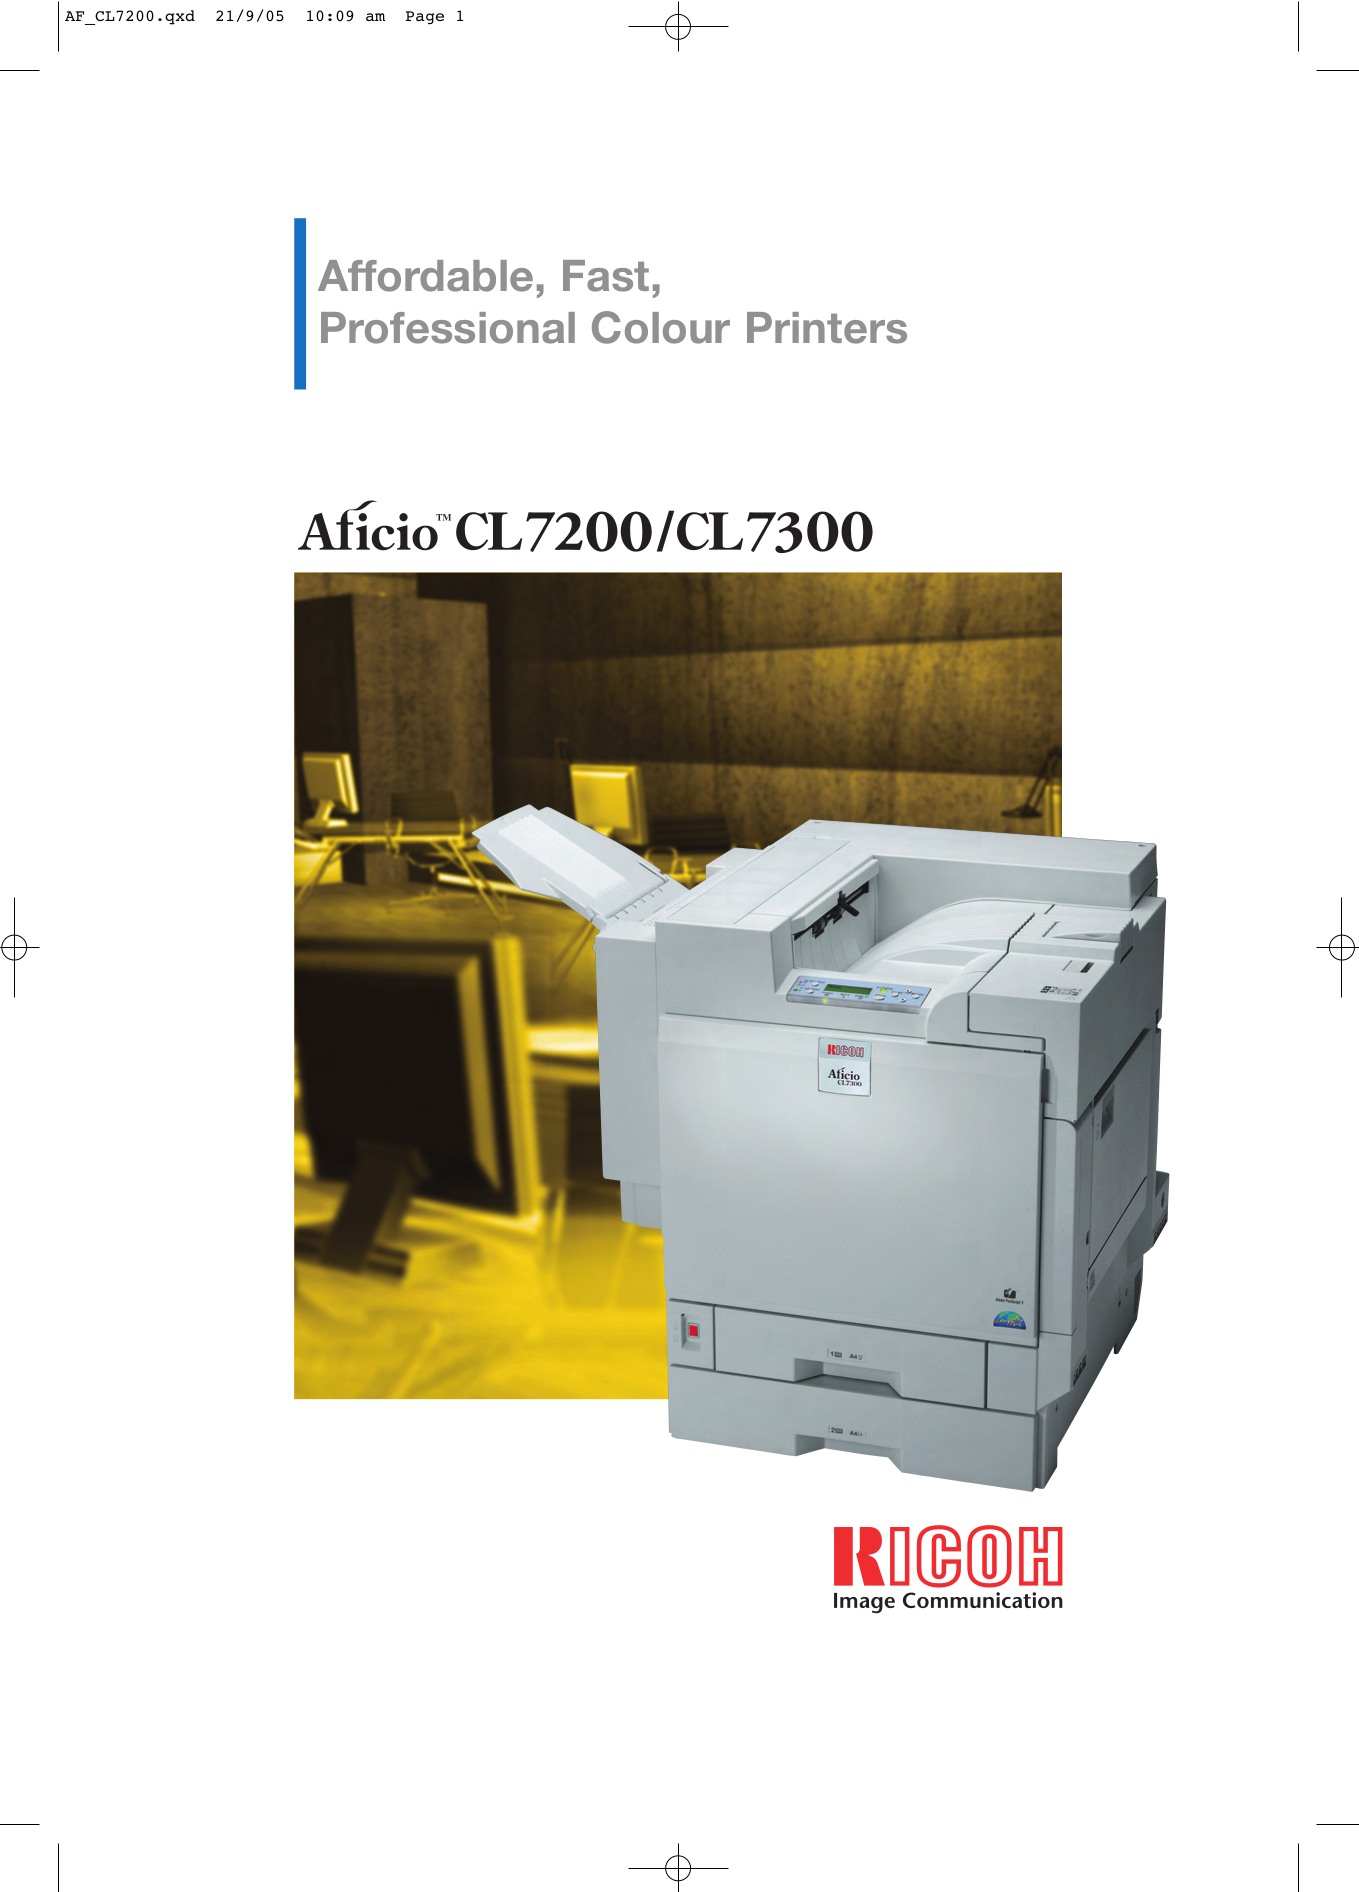 pdf for Ricoh Scanner IS100 manual